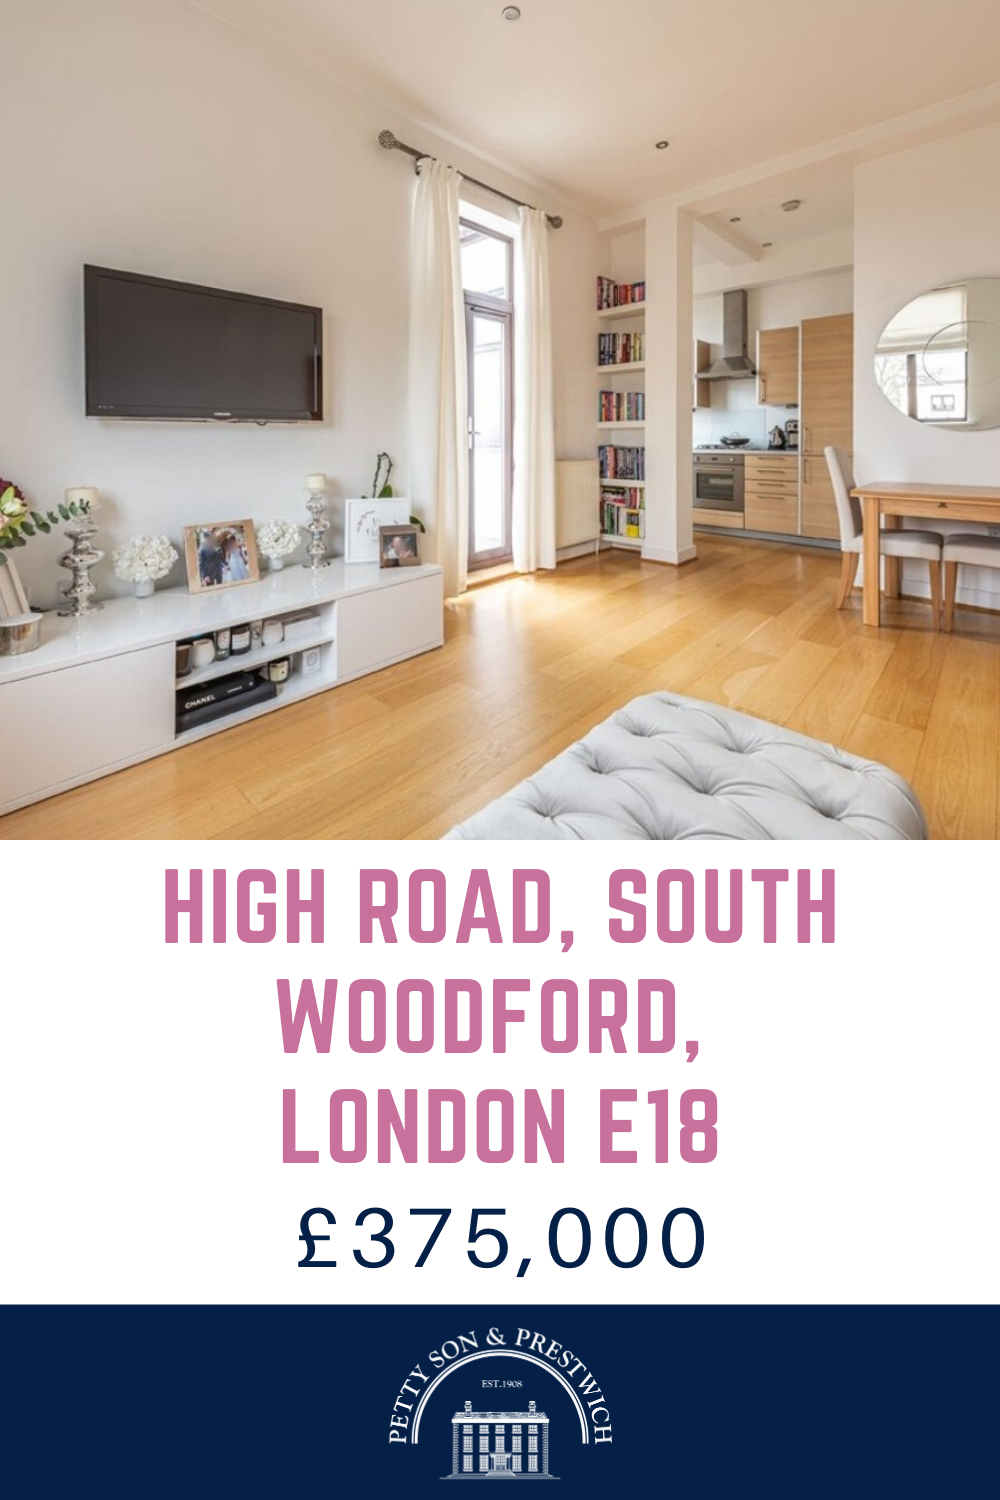 New To Market High Road Southwoodford 1 Bedroom 1 Bathroom Apartment For Sale 375 000 Petty Son And Prestwich A In 2020 Apartments For Sale London Property